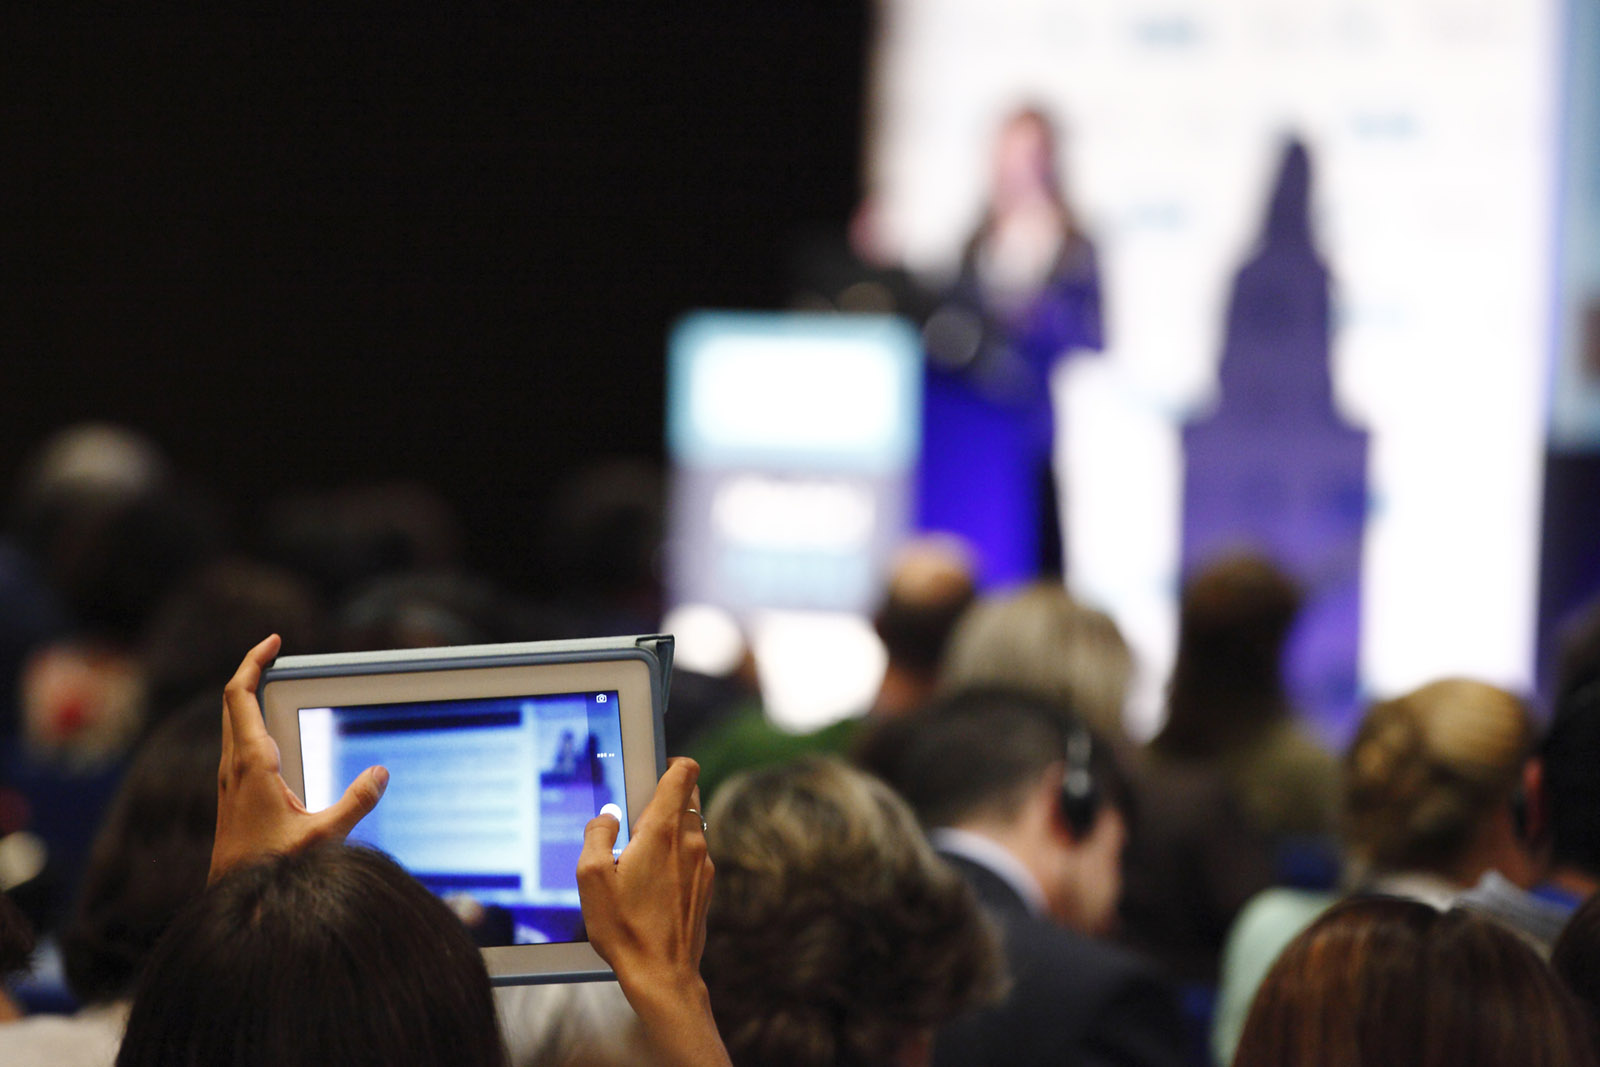 event conference photographer Madrid Spain 1044.JPG